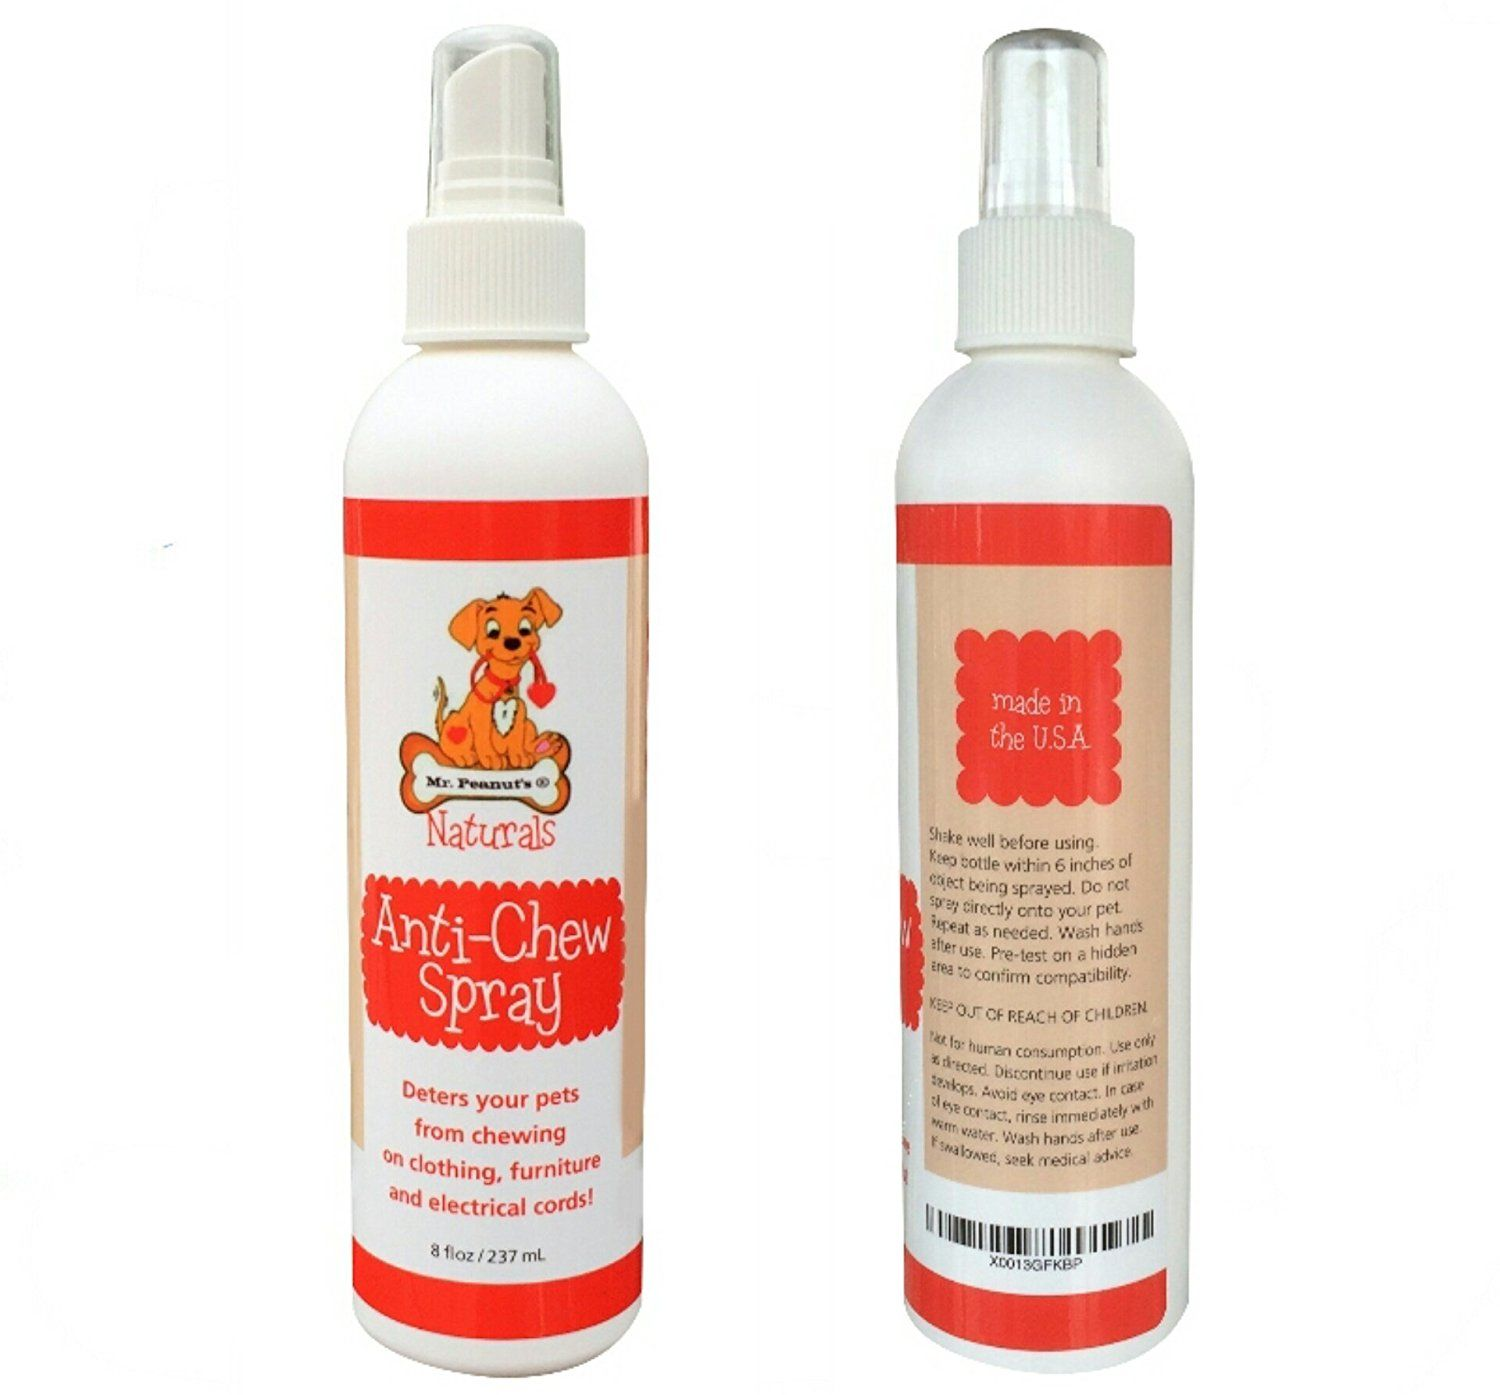 Mr Peanut S Alcohol Free Anti Chew Spray Non Toxic And Ultra Safe Chewing Deterrent Great Puppy And Kitten Train Cat Repellant Puppy Proofing Teeth Cleaning